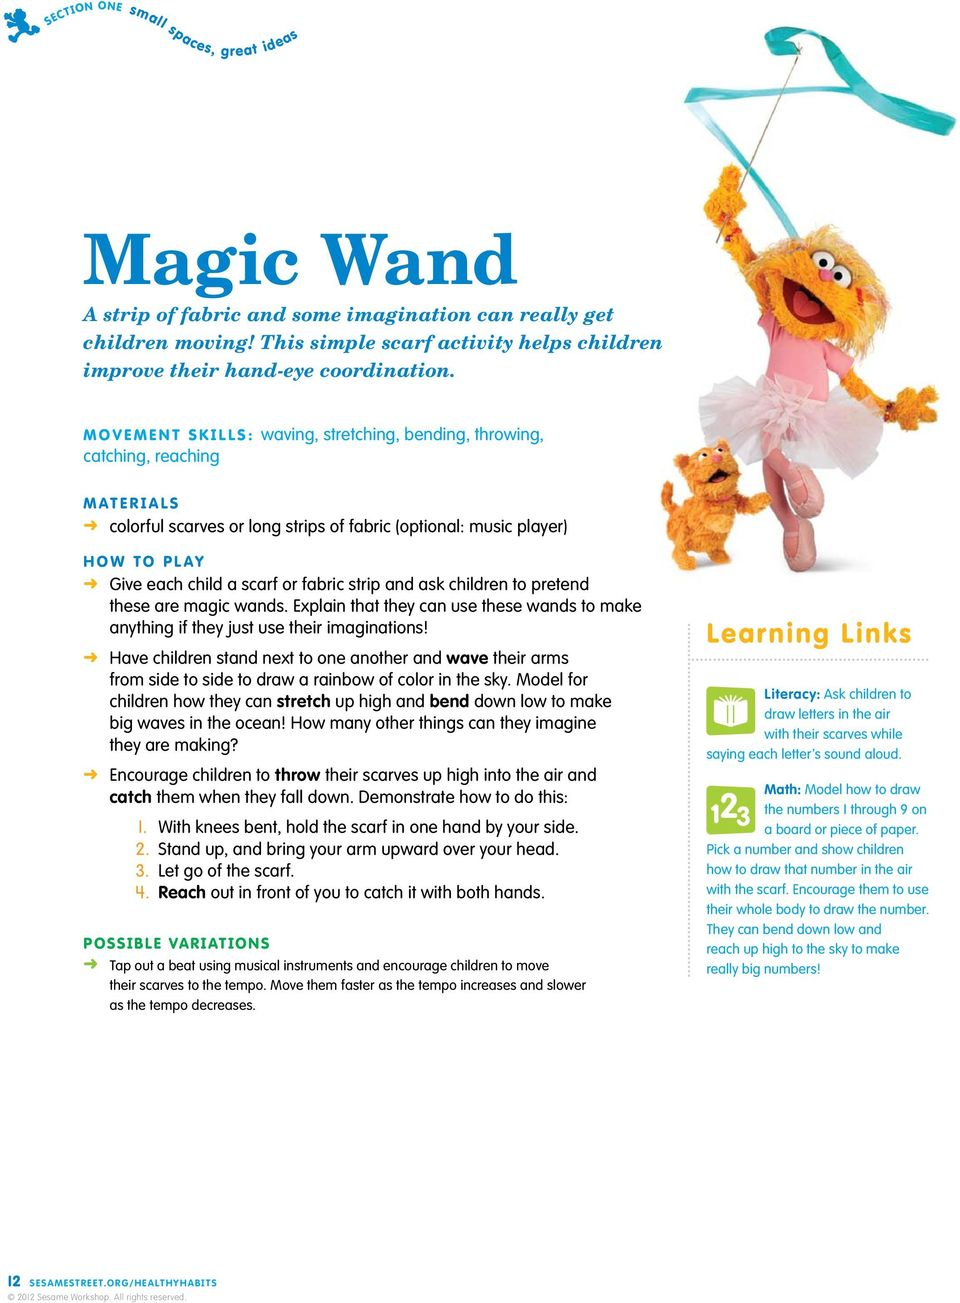 fabric strip and ask children to pretend these are magic wands. Explain that they can use these wands to make anything if they just use their imaginations!